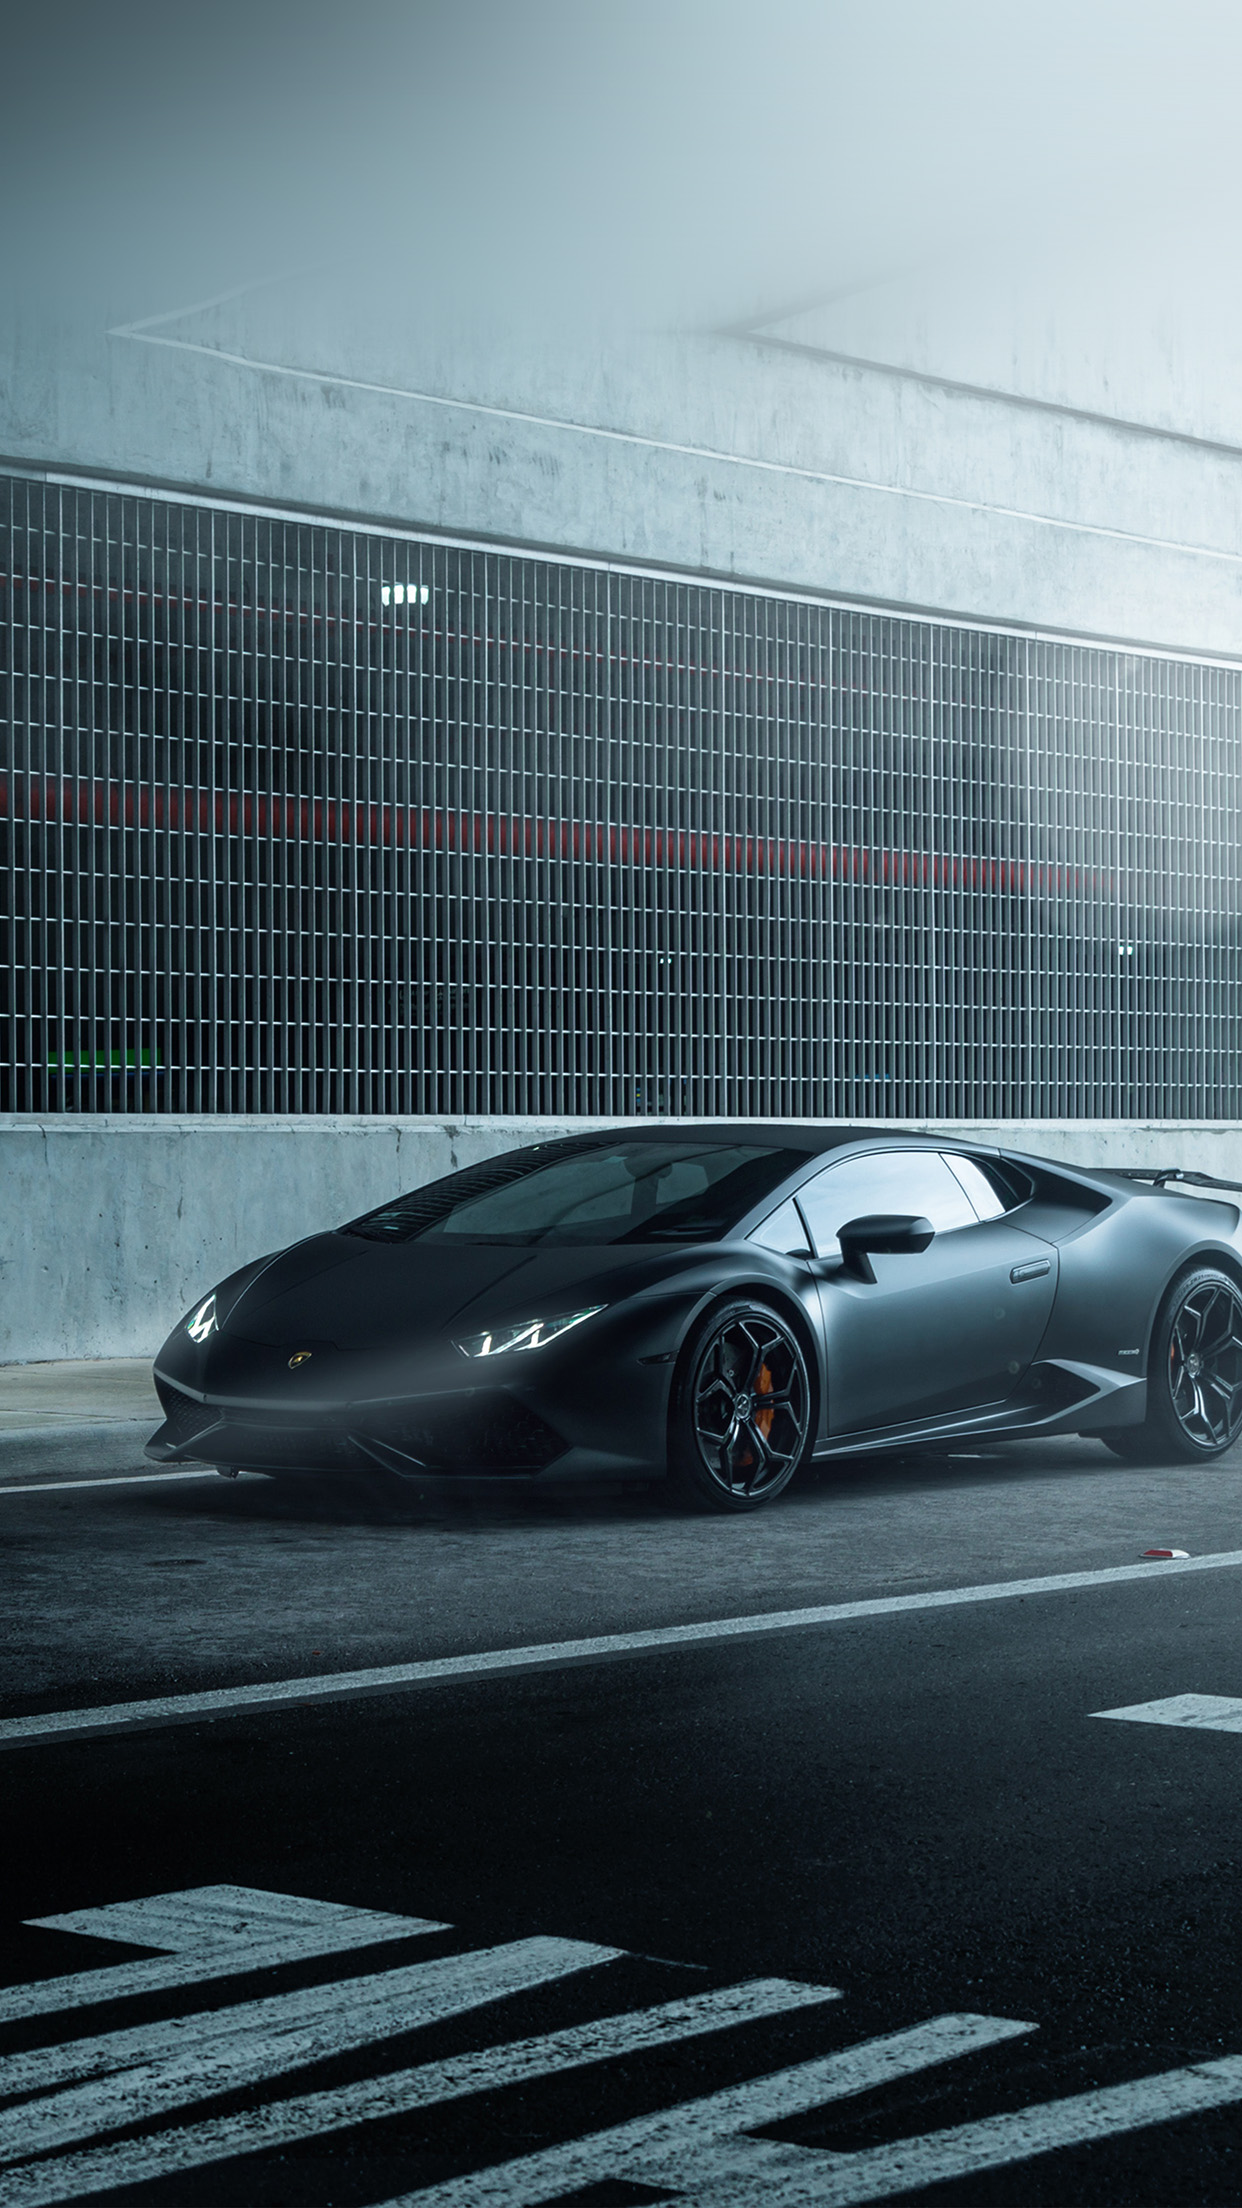 Iphone7papers Com Iphone7 Wallpaper Aq49 Lamborghini Huracan